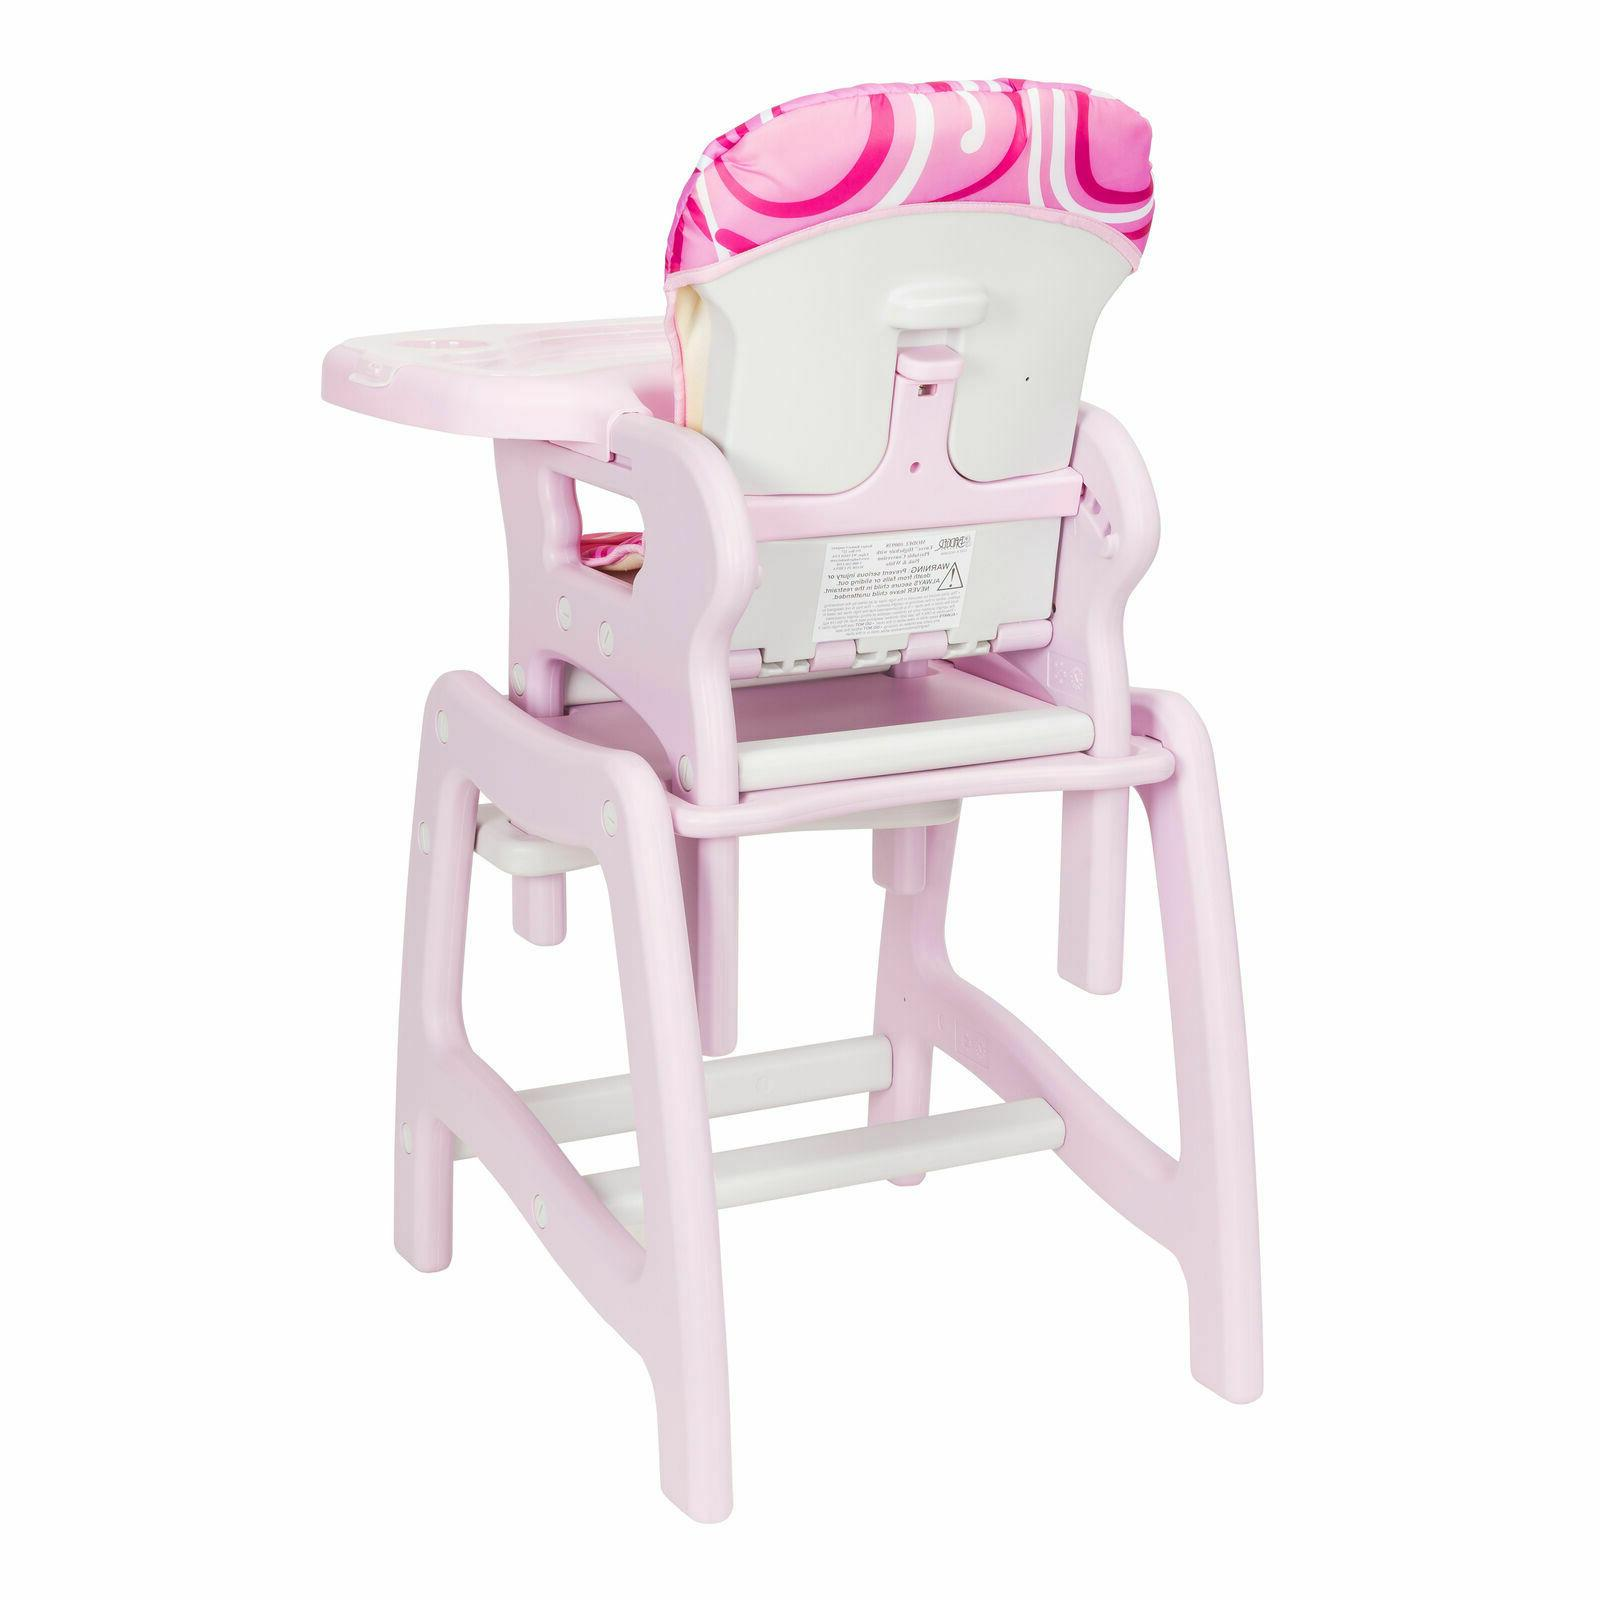 Convertible High Feeding Booster Seat Infant Furniture